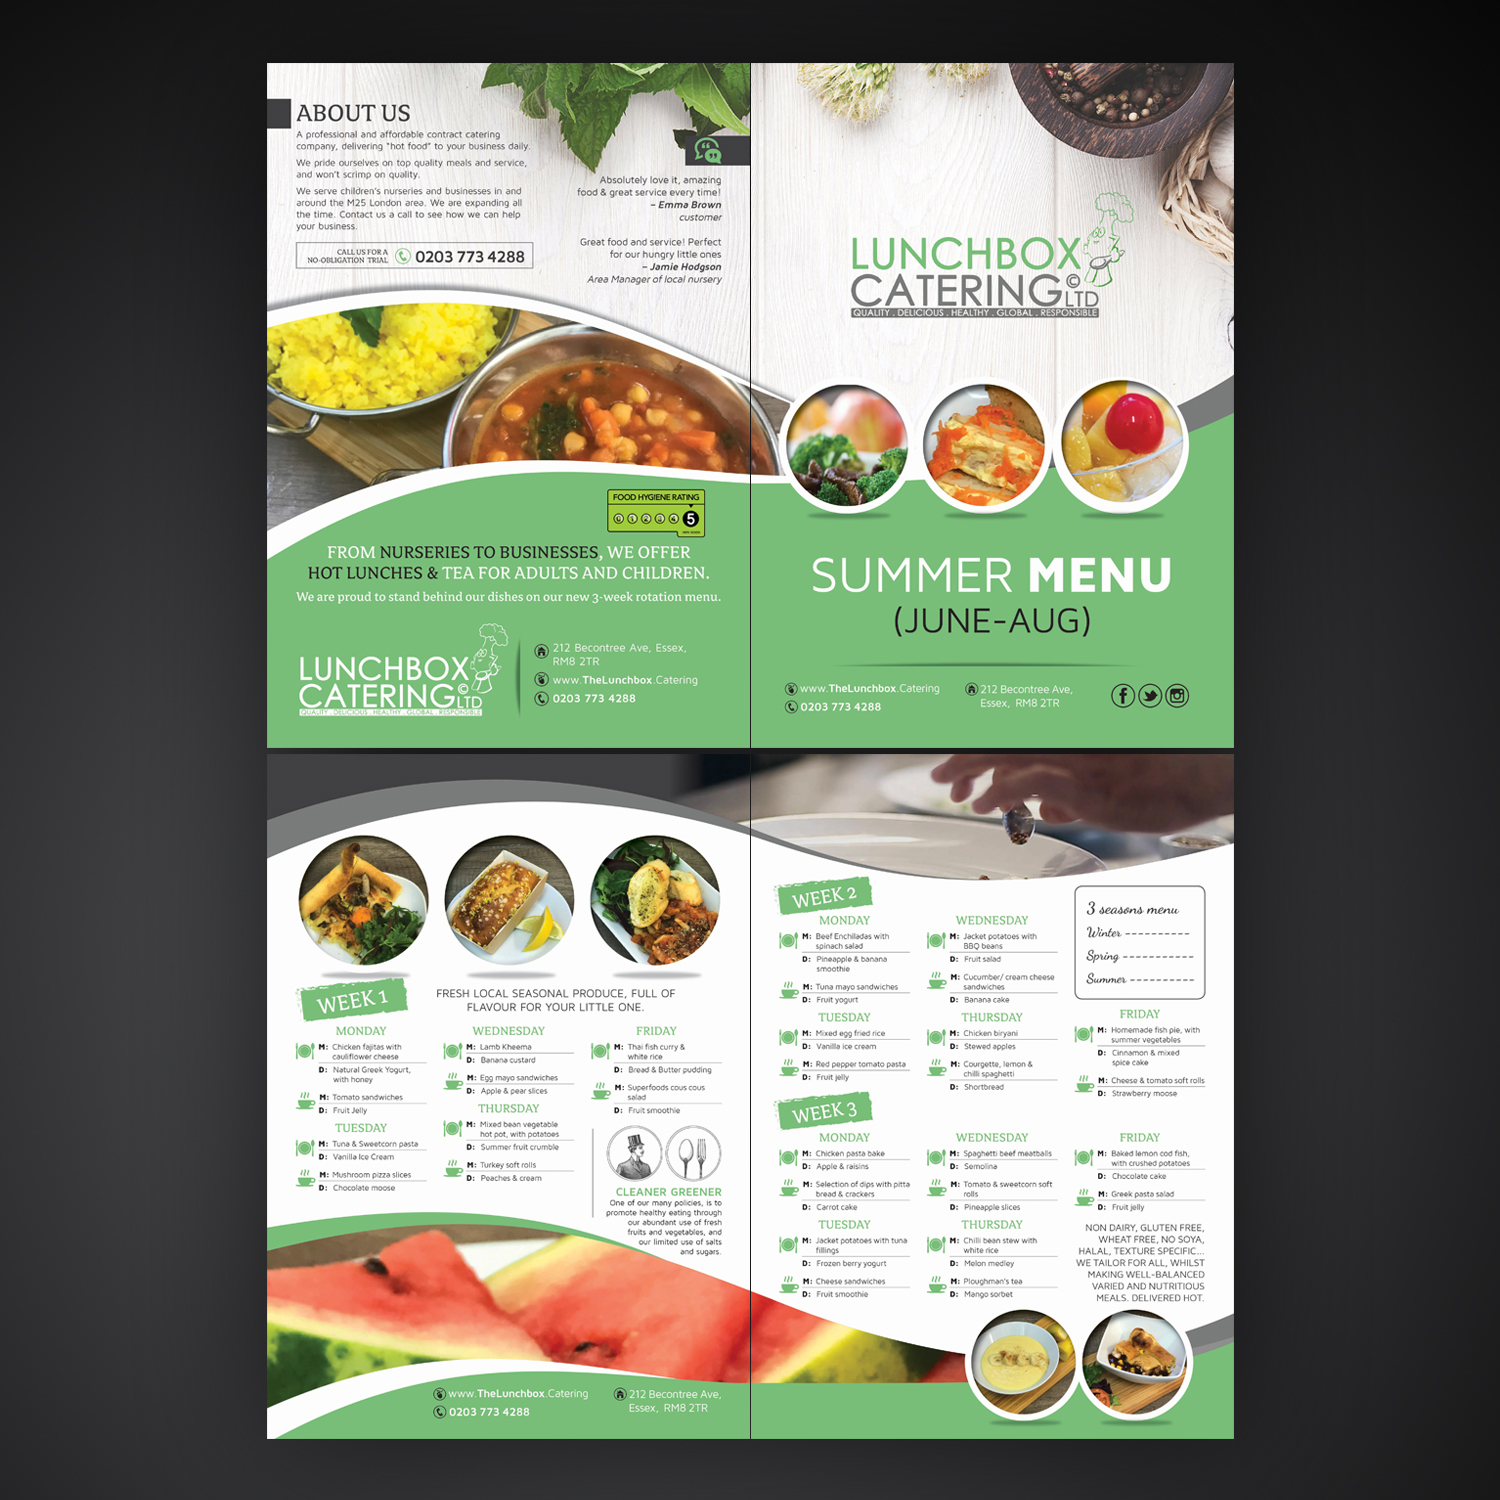 modern professional catering flyer design for lunchbox catering by